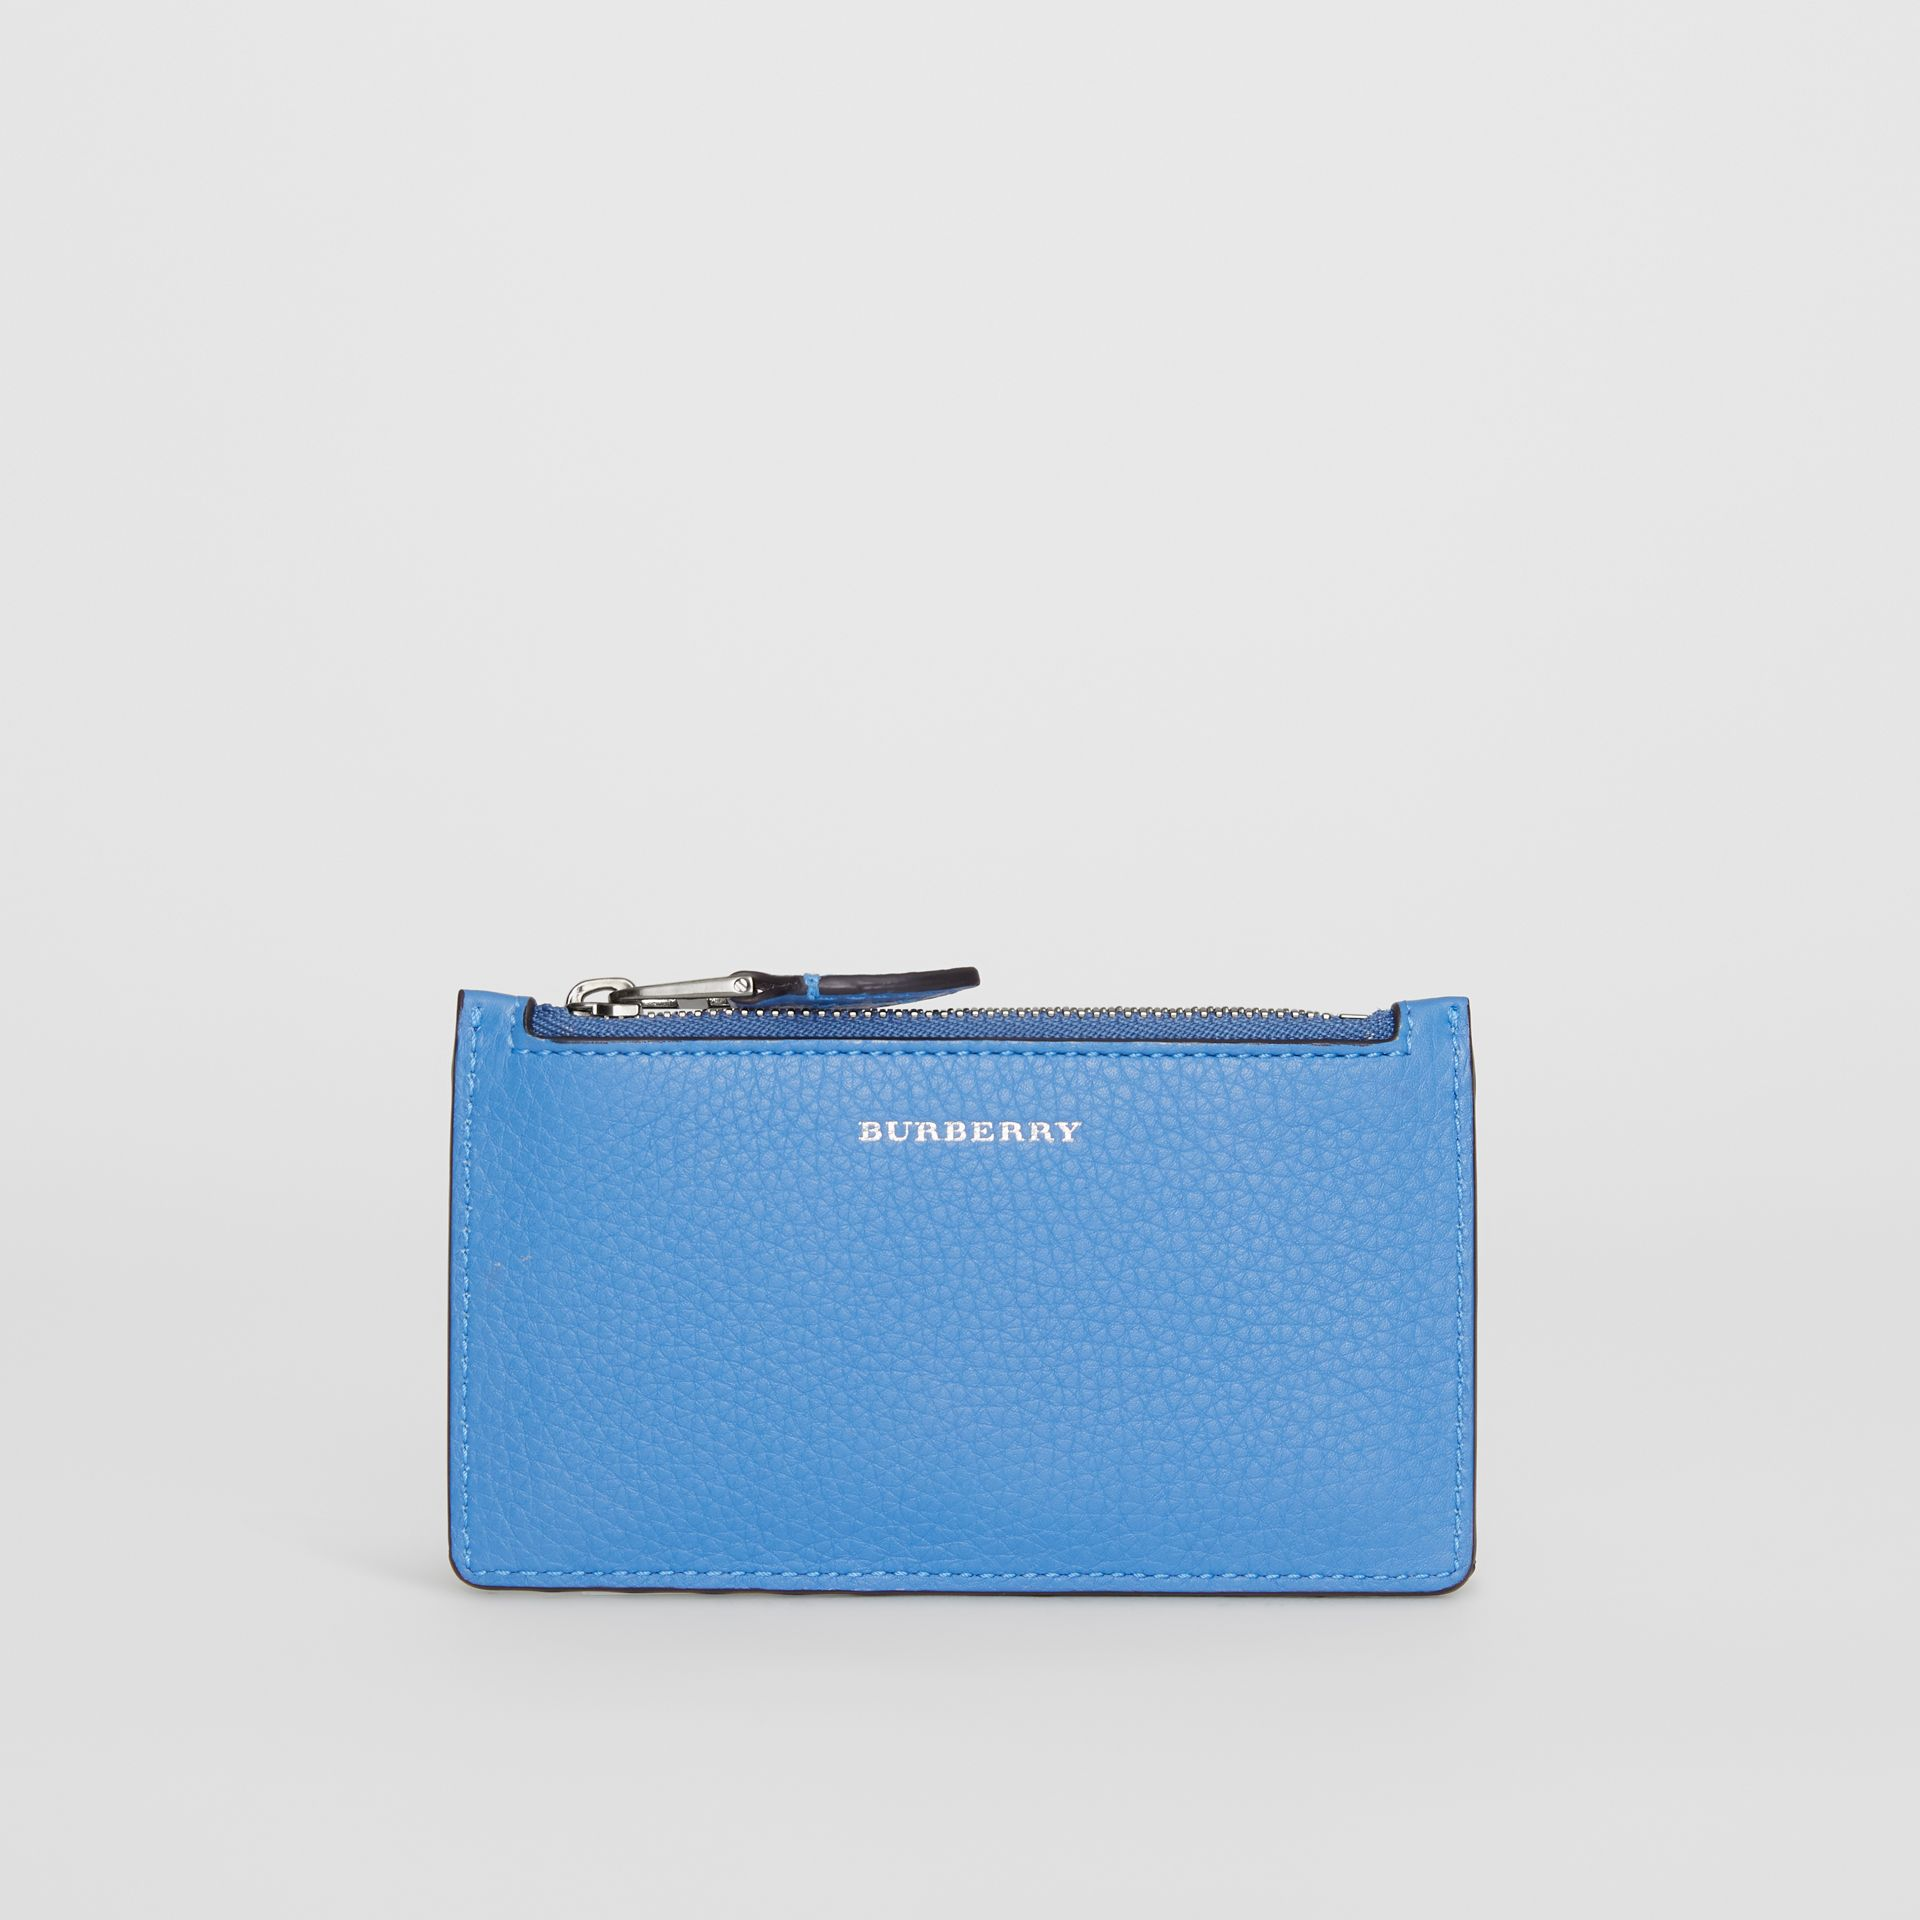 Two-tone Leather Card Case in Hydrangea Blue - Women | Burberry United Kingdom - gallery image 2